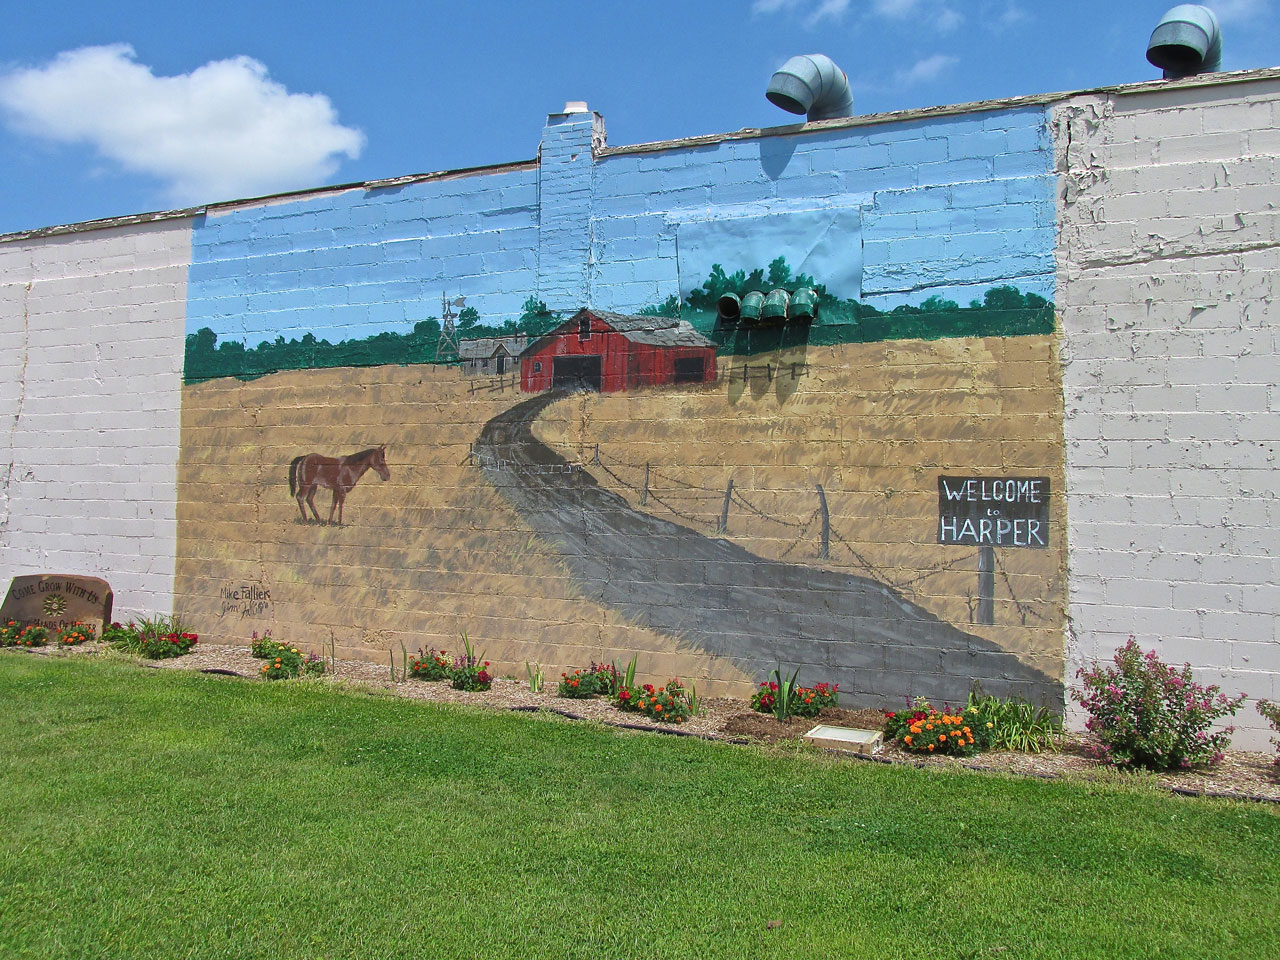 Kansas harper county danville - Obscured By The Tree In The Photo Above Was This Welcoming Mural By Mike Fallier Of Wichita Ks